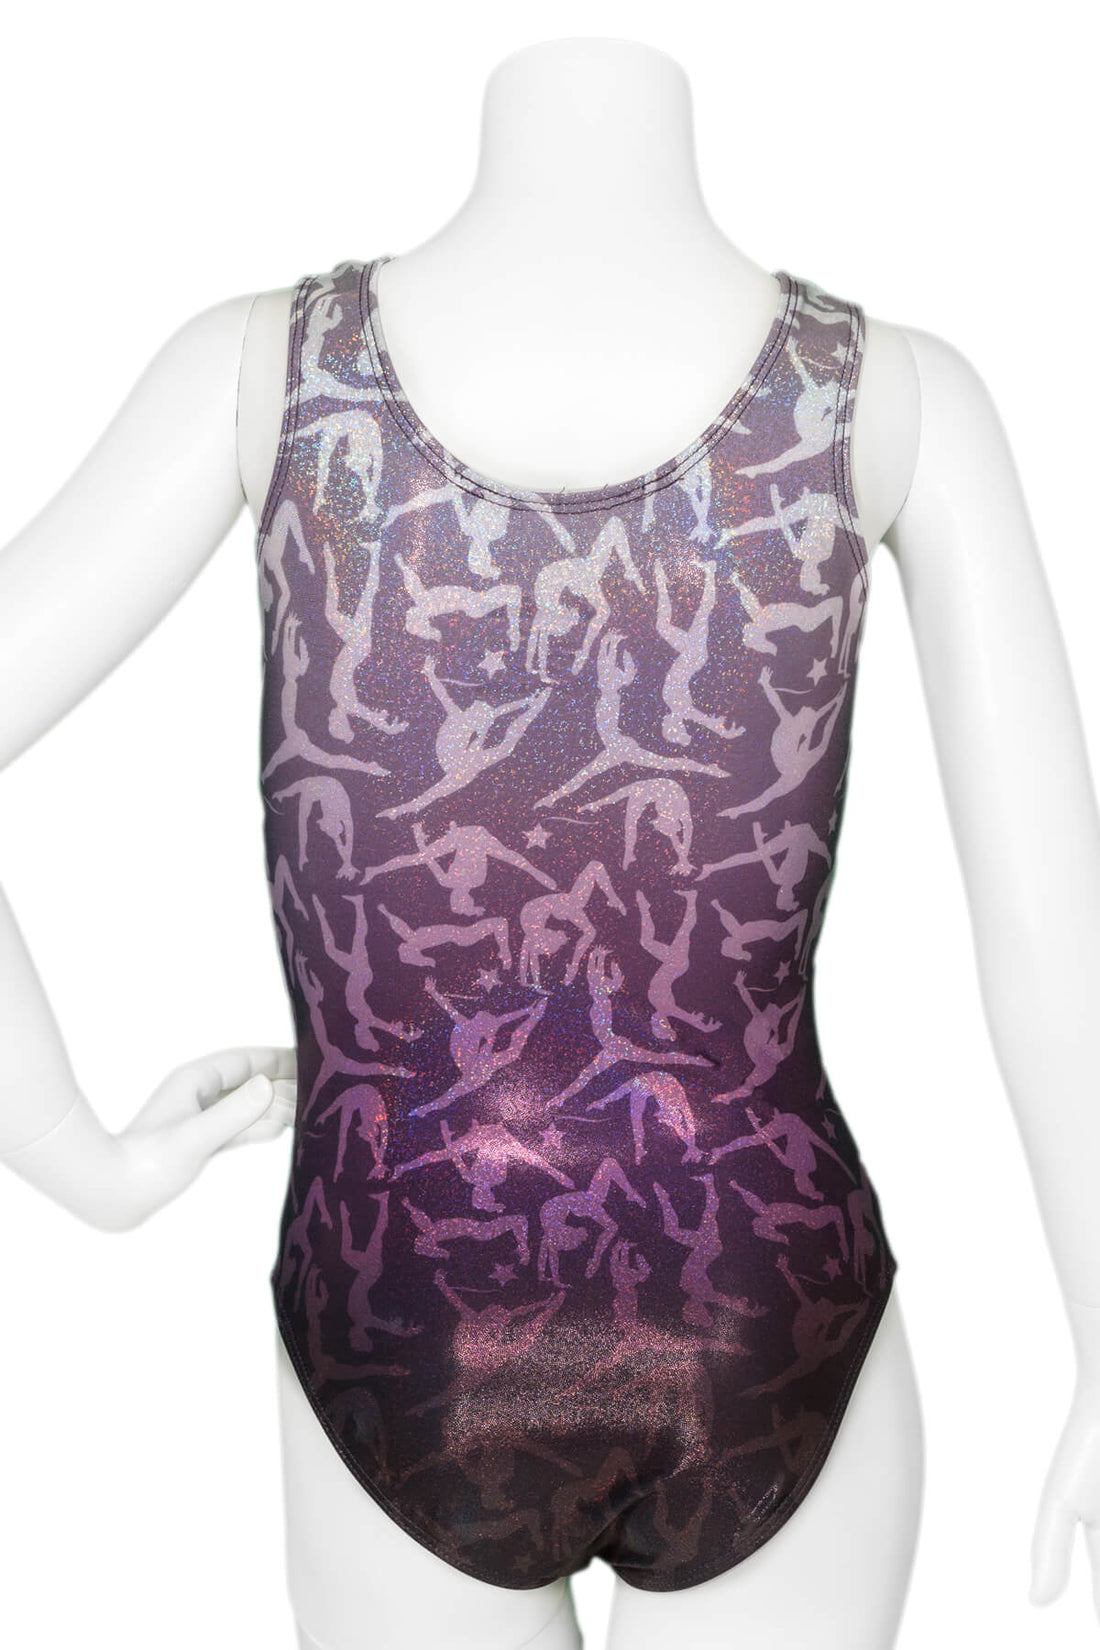 Gymnast Illusions Leotard